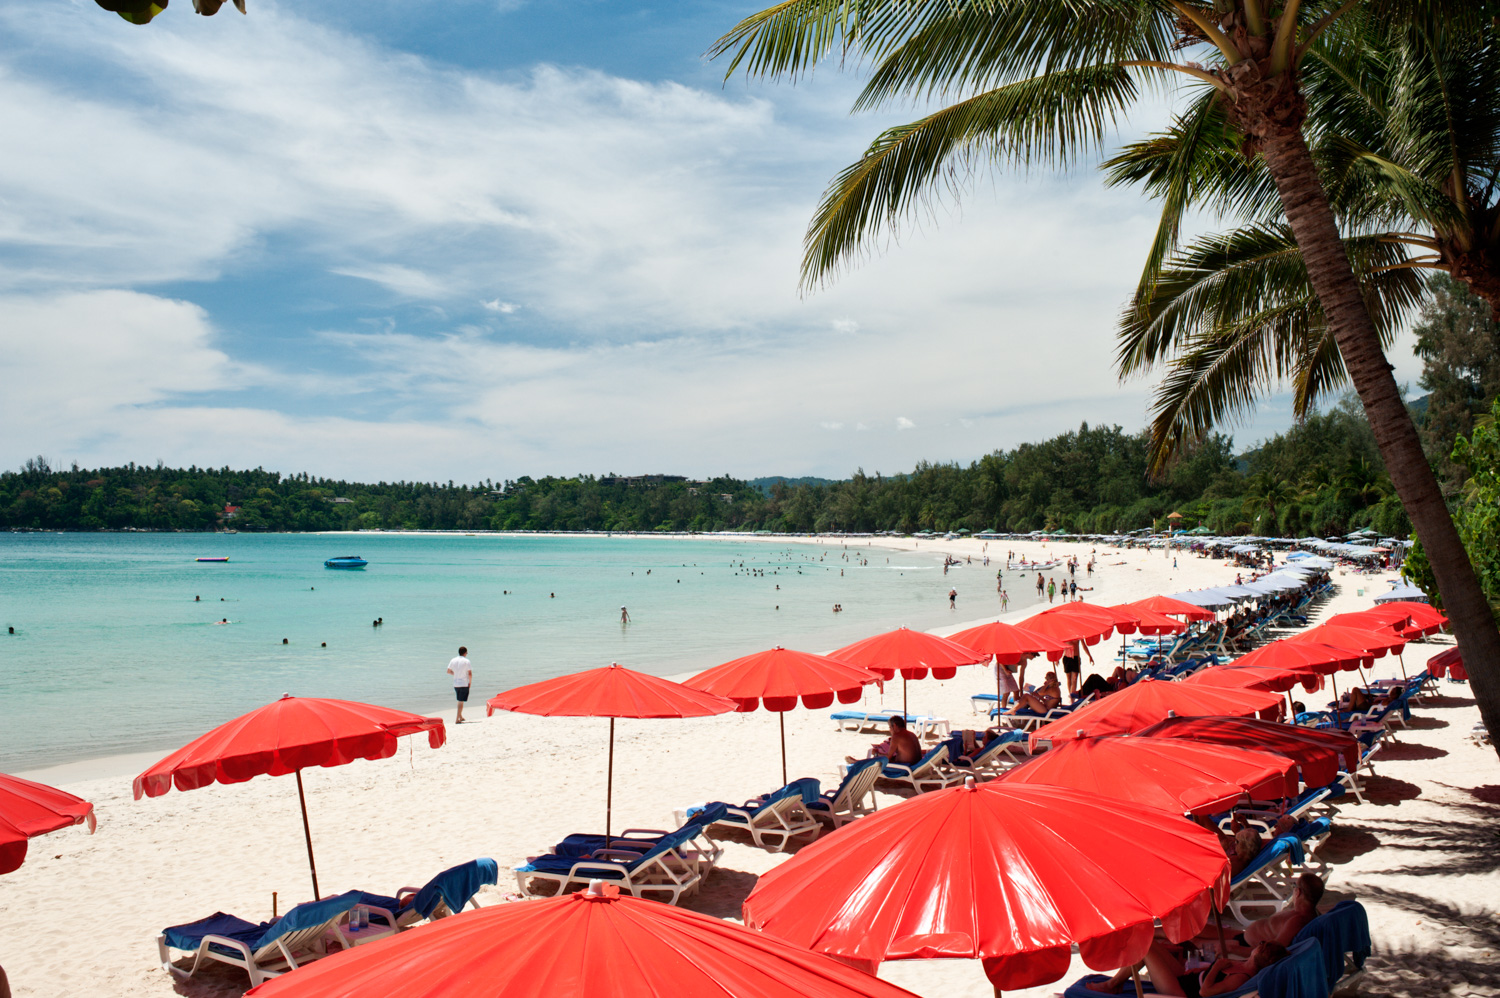 21 tips for Stock Photography Red Umbrella' s on a Tropical Island beach